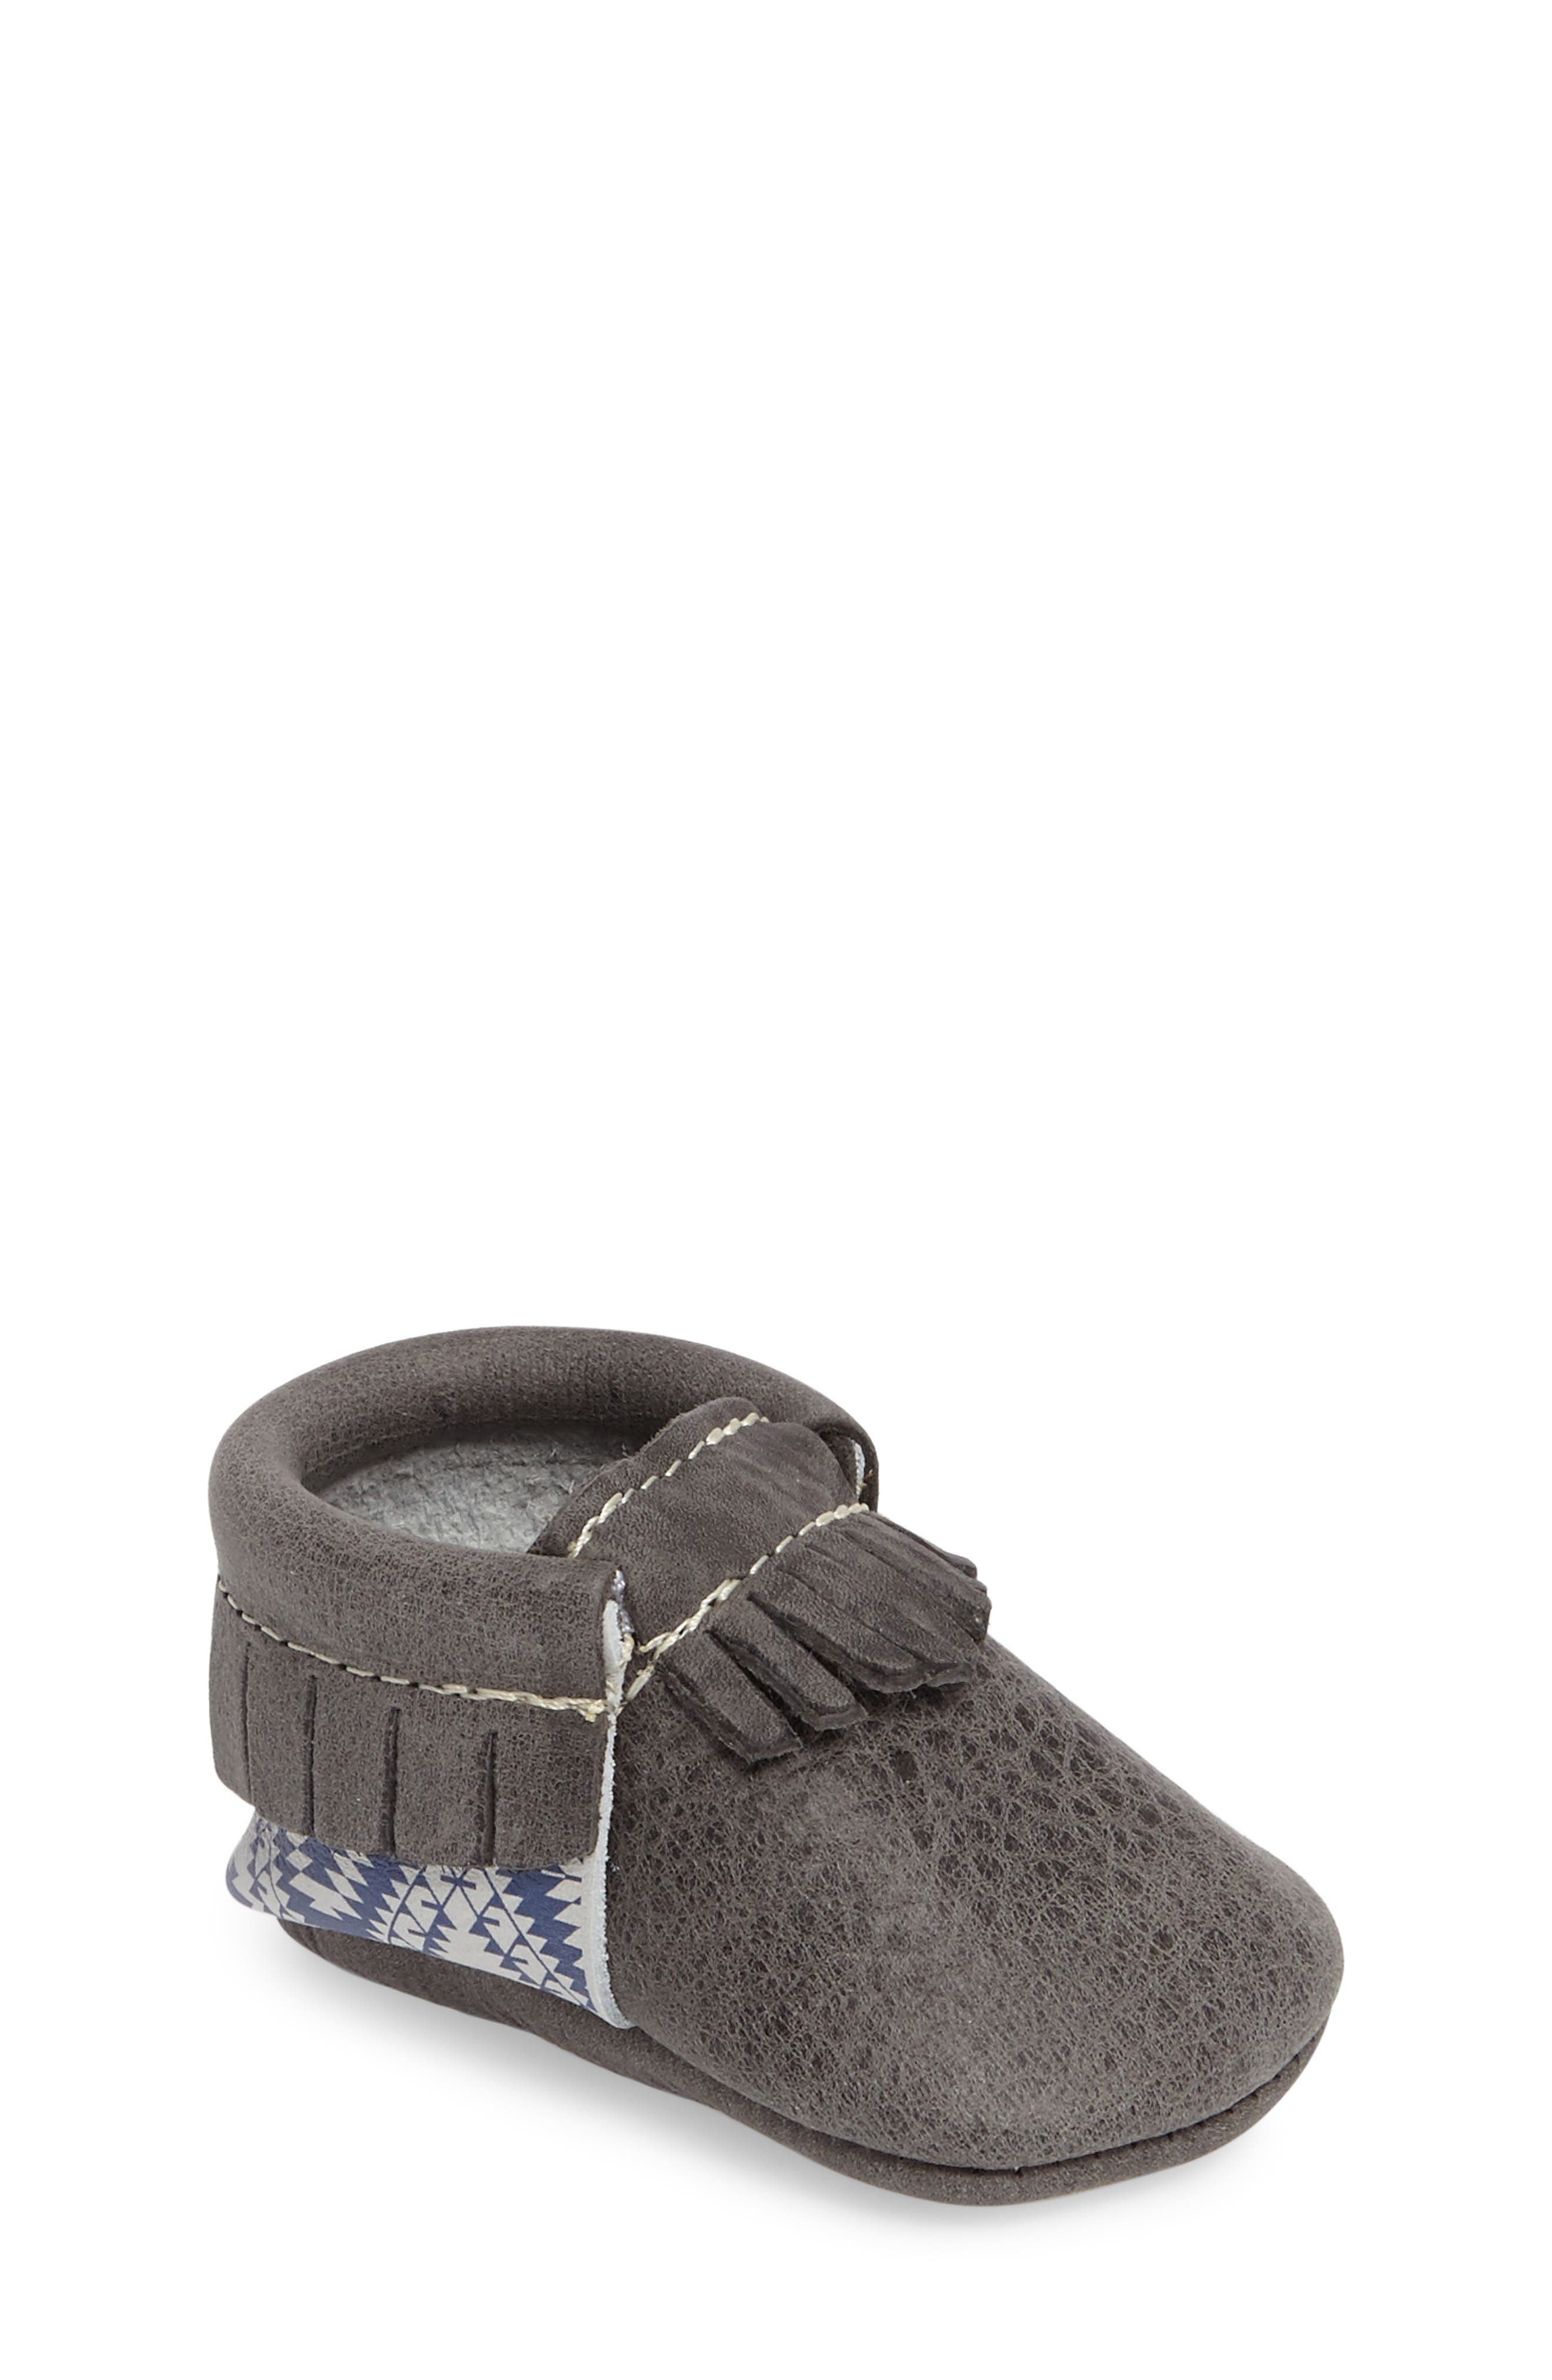 Leather Moccasin,                         Main,                         color, 021